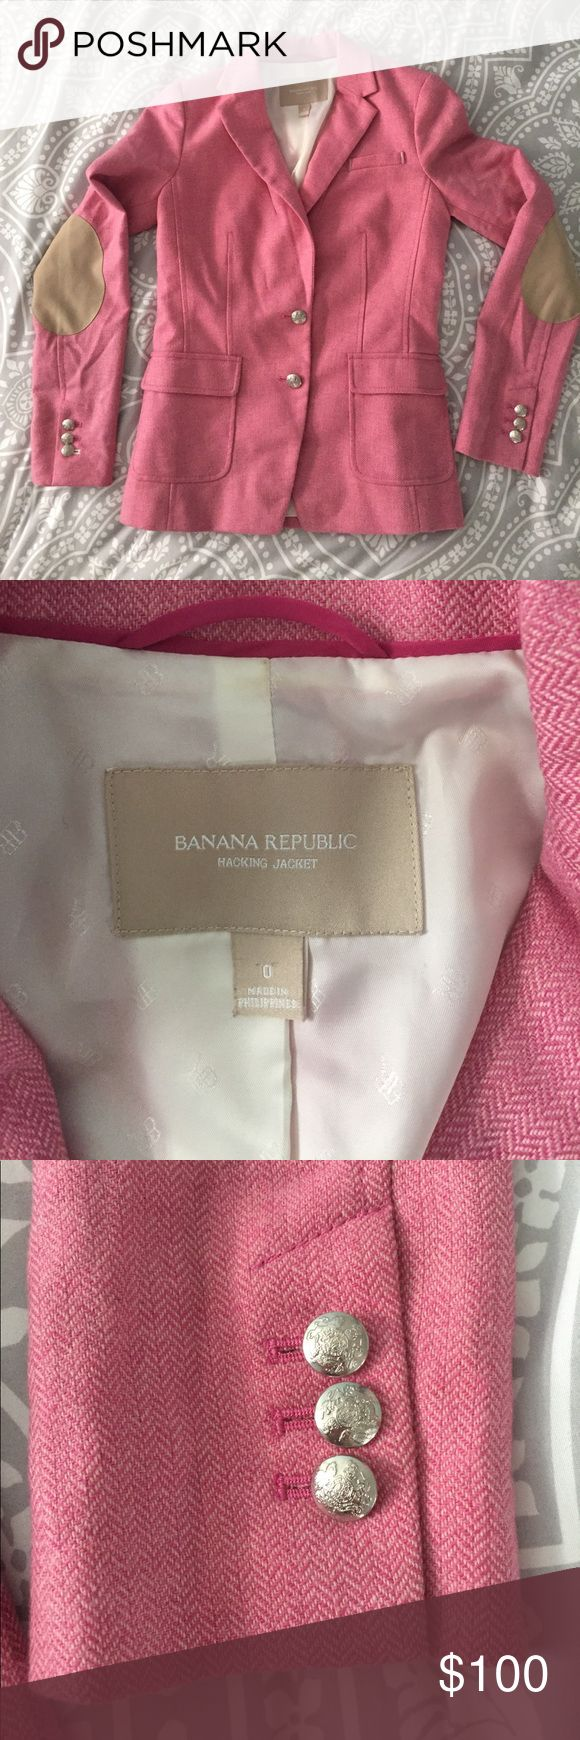 Banana Republic Hacking Jacket Blazer Pink size 0 This Banana Republic pink wool hacking jacket is a classic piece. Straight from my sister's closet and into yours! Beautiful silver buttons, khaki colored elbow patches, cream lining under collar. Great way to add a pop of color to your wardrobe. There is a small pen mark on the inside lining (pictured). Hazards of teaching! Banana Republic Jackets & Coats Blazers